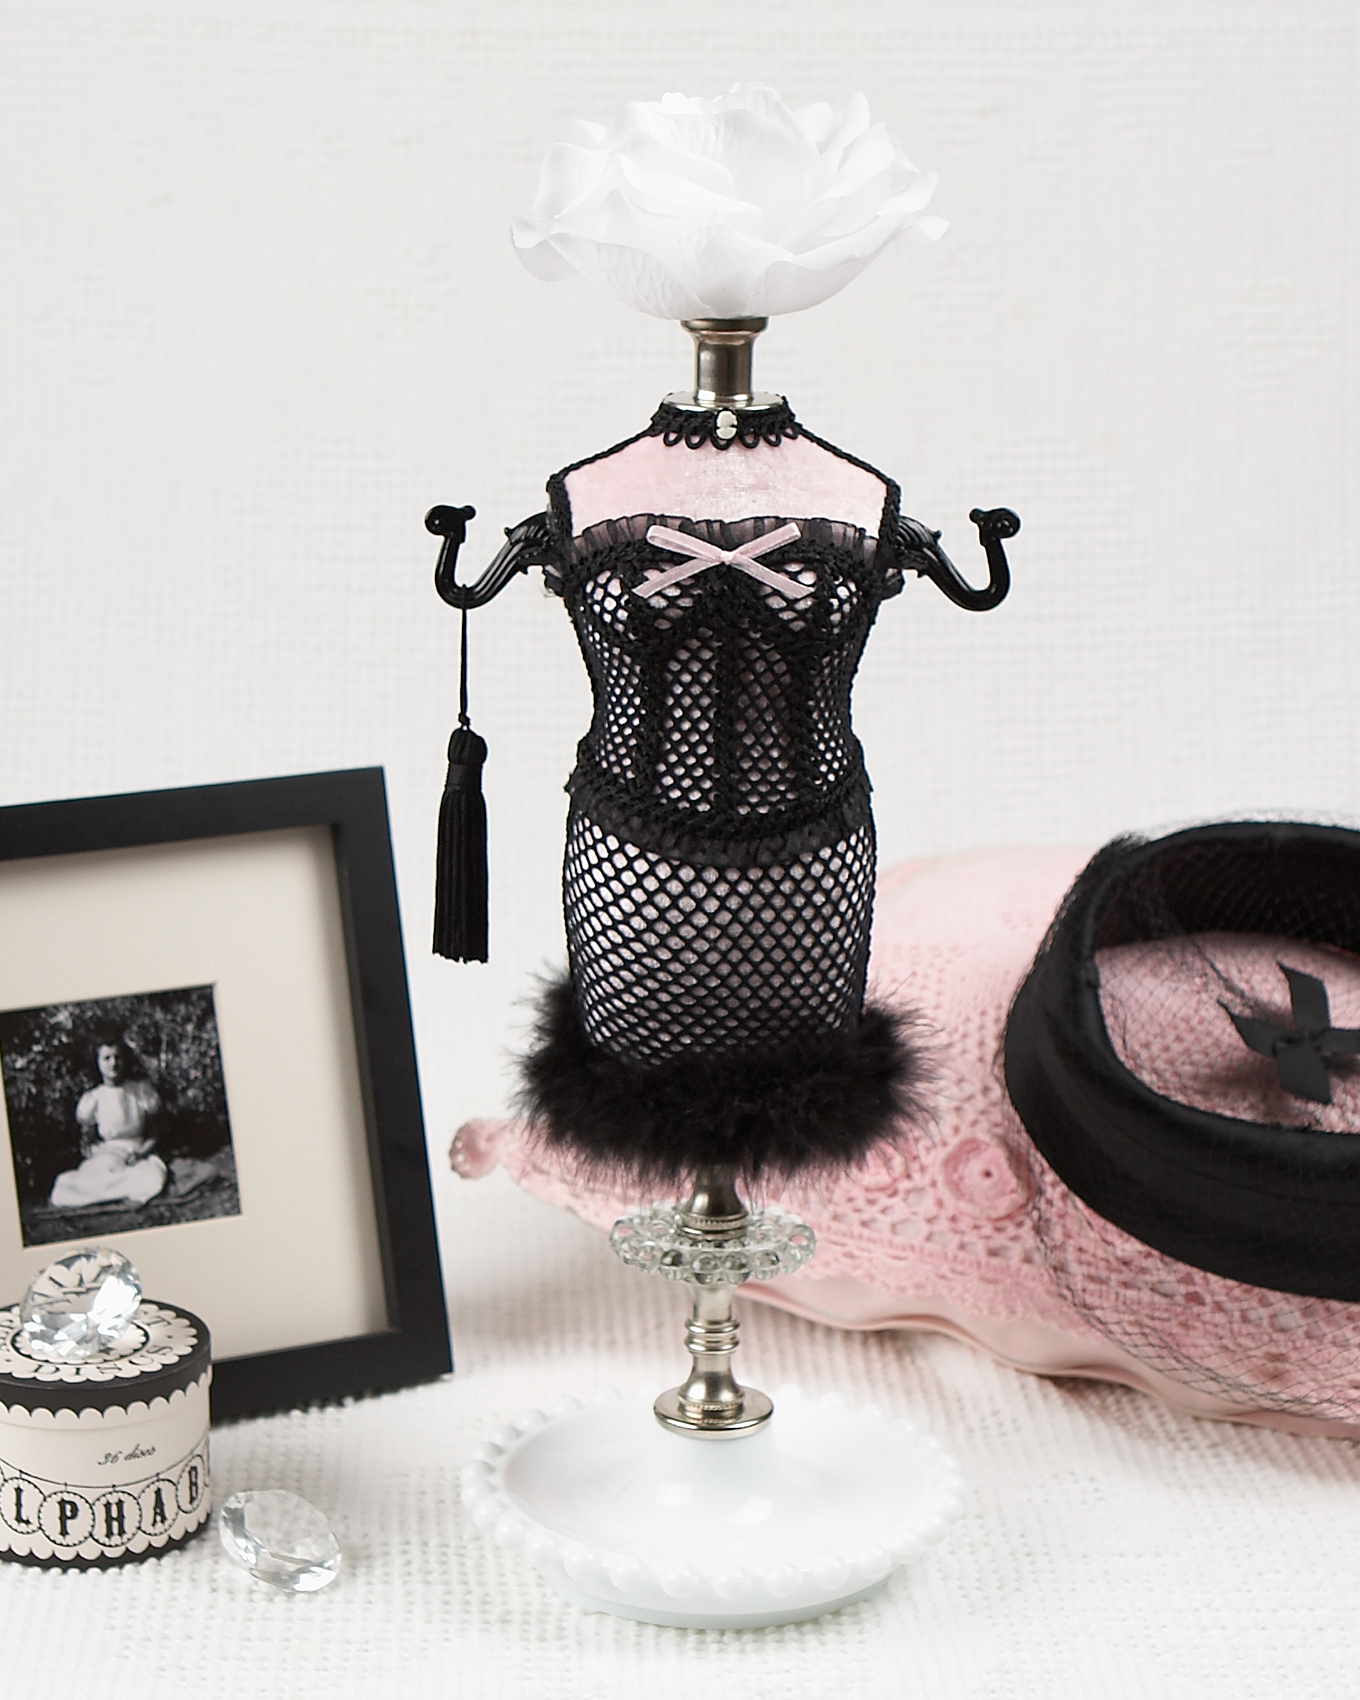 Jewelery holder figurine in boudoir outfit